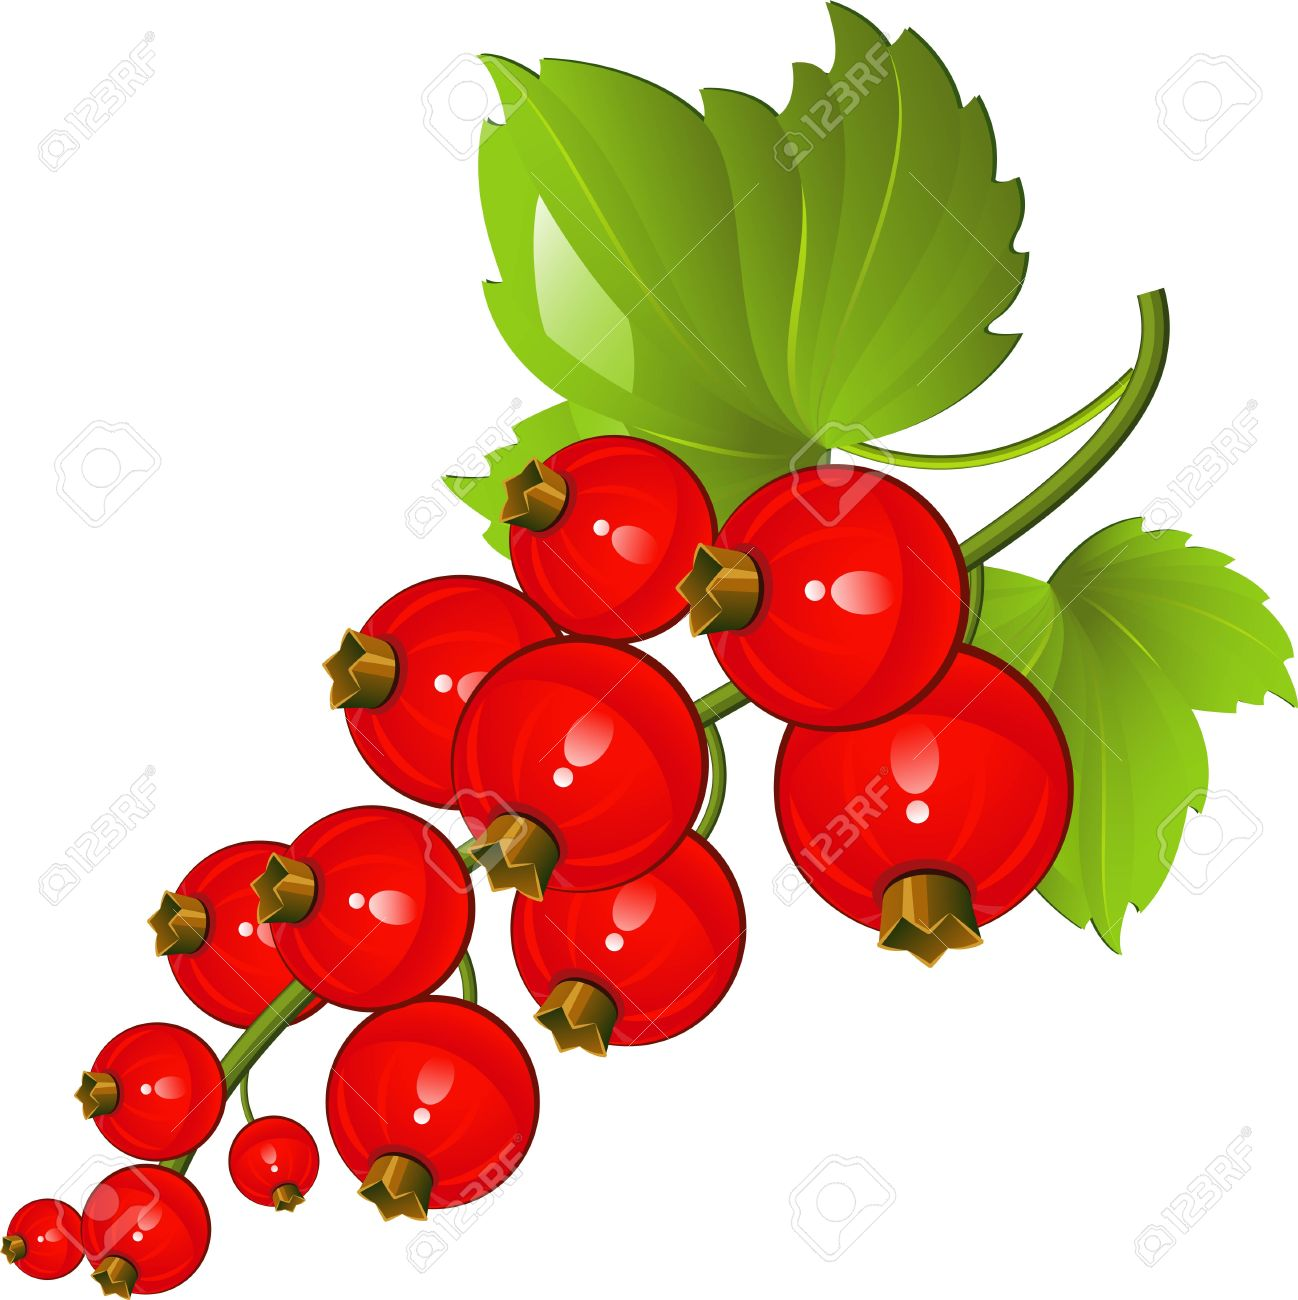 Currants clipart #18, Download drawings